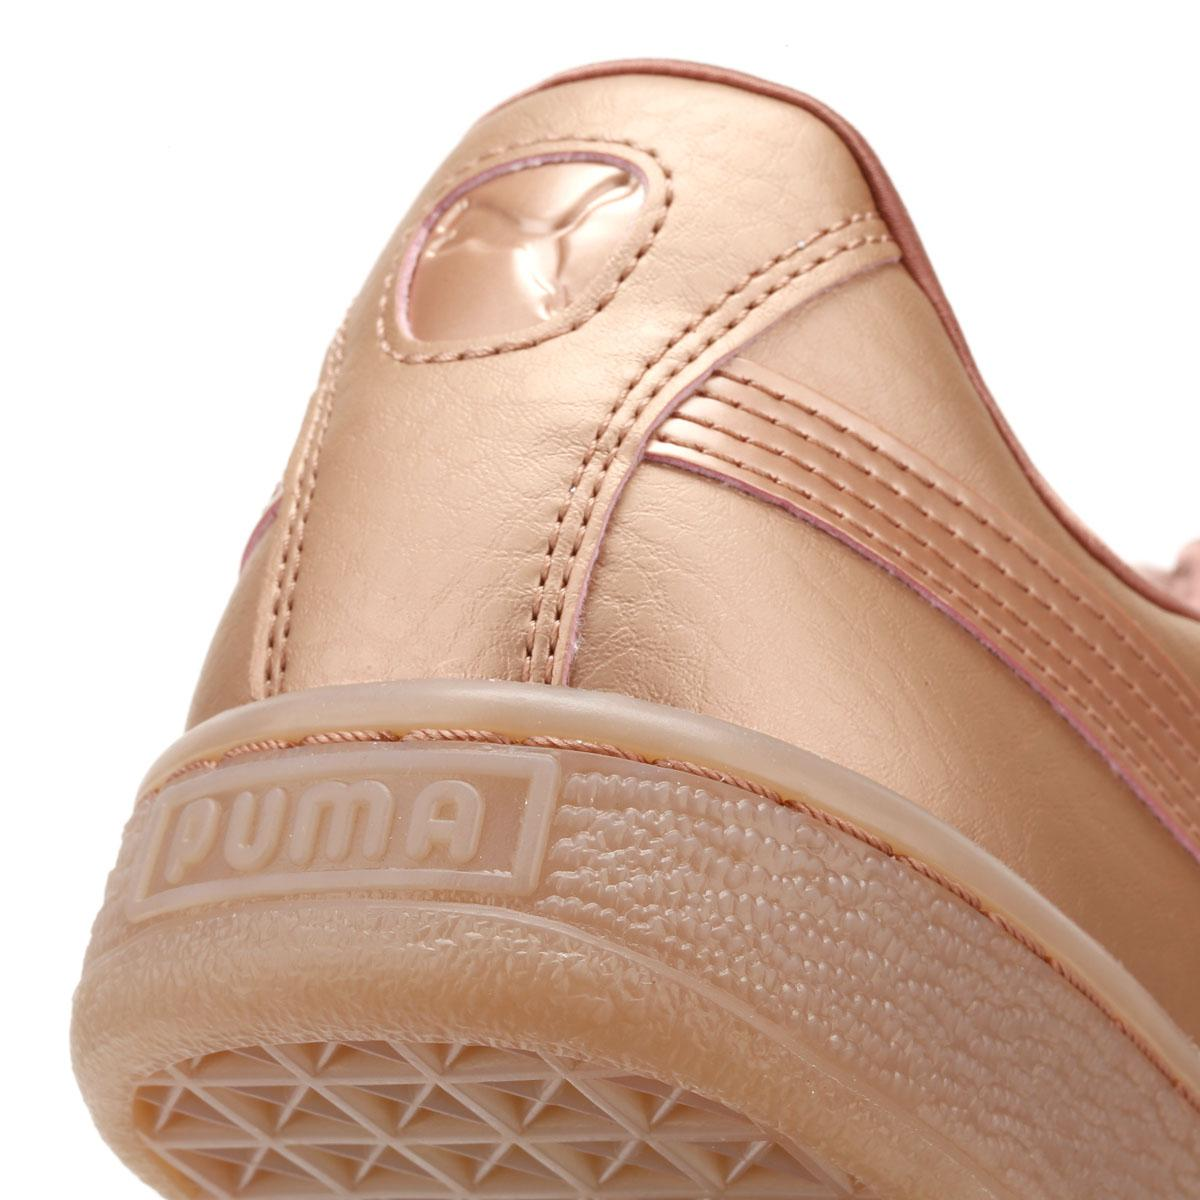 606cdcdc331 Lyst - PUMA Womens Copper Pink Basket Heart Patent Trainers in Pink